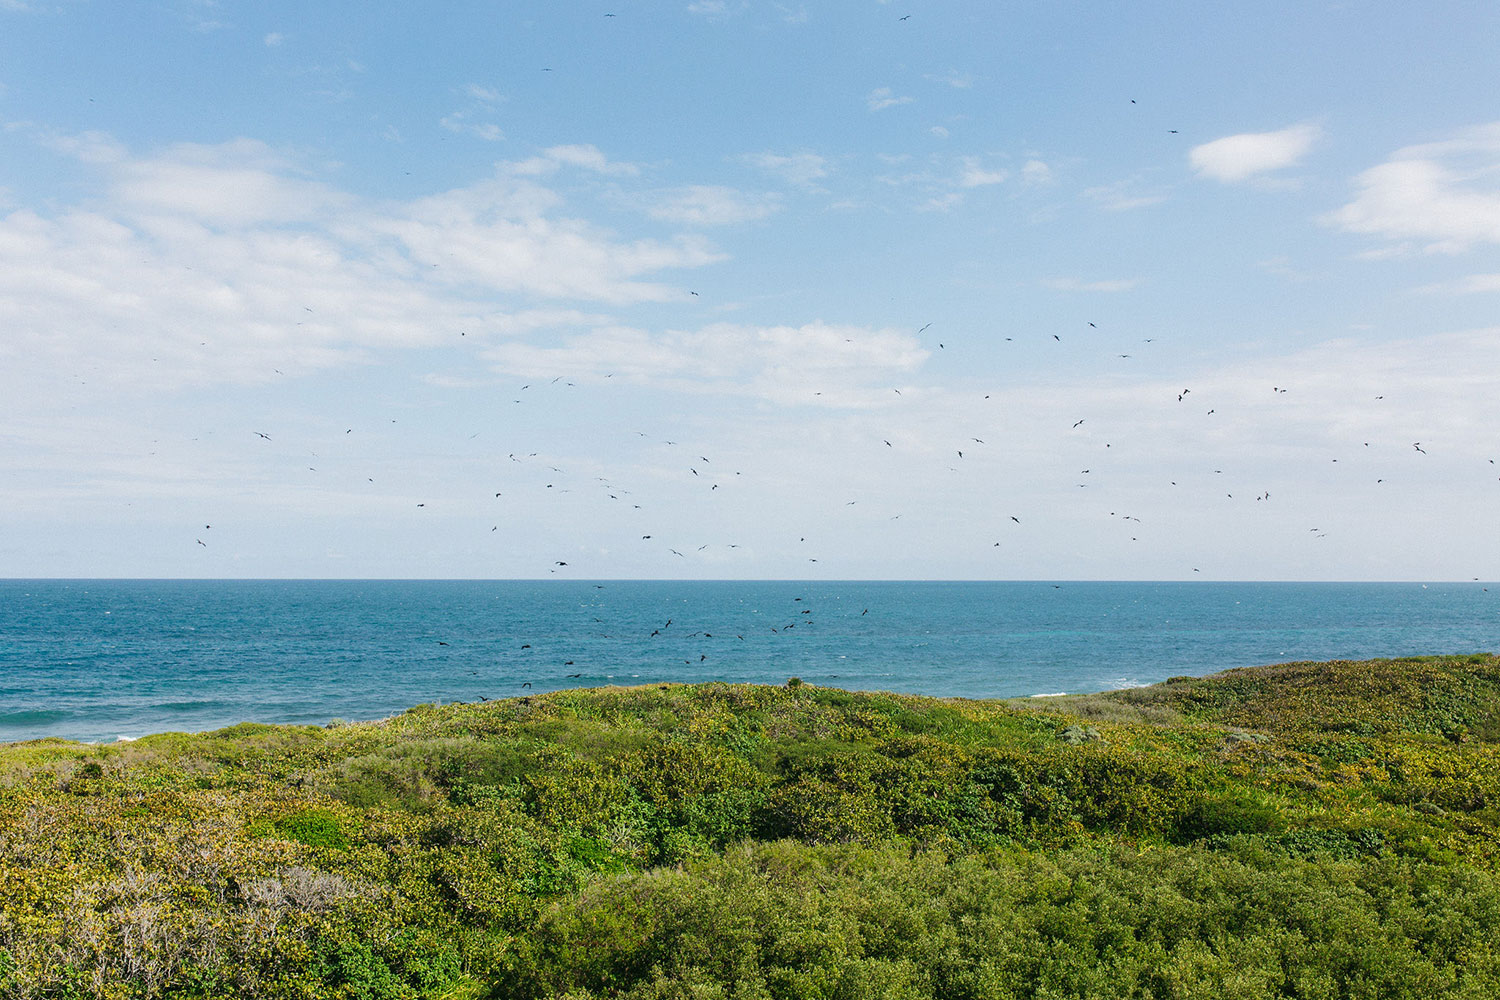 Spot the frigate birds.